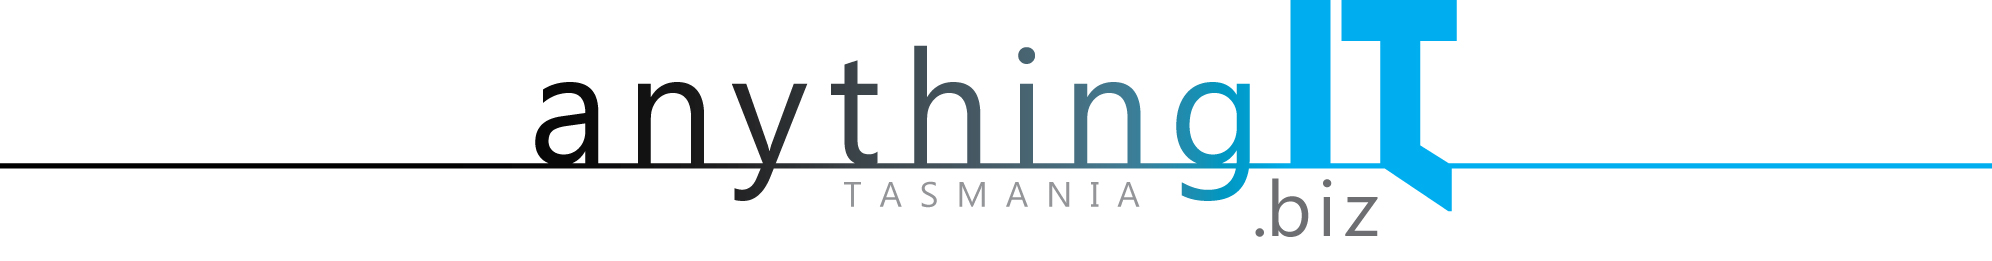 anythingIT.biz logo